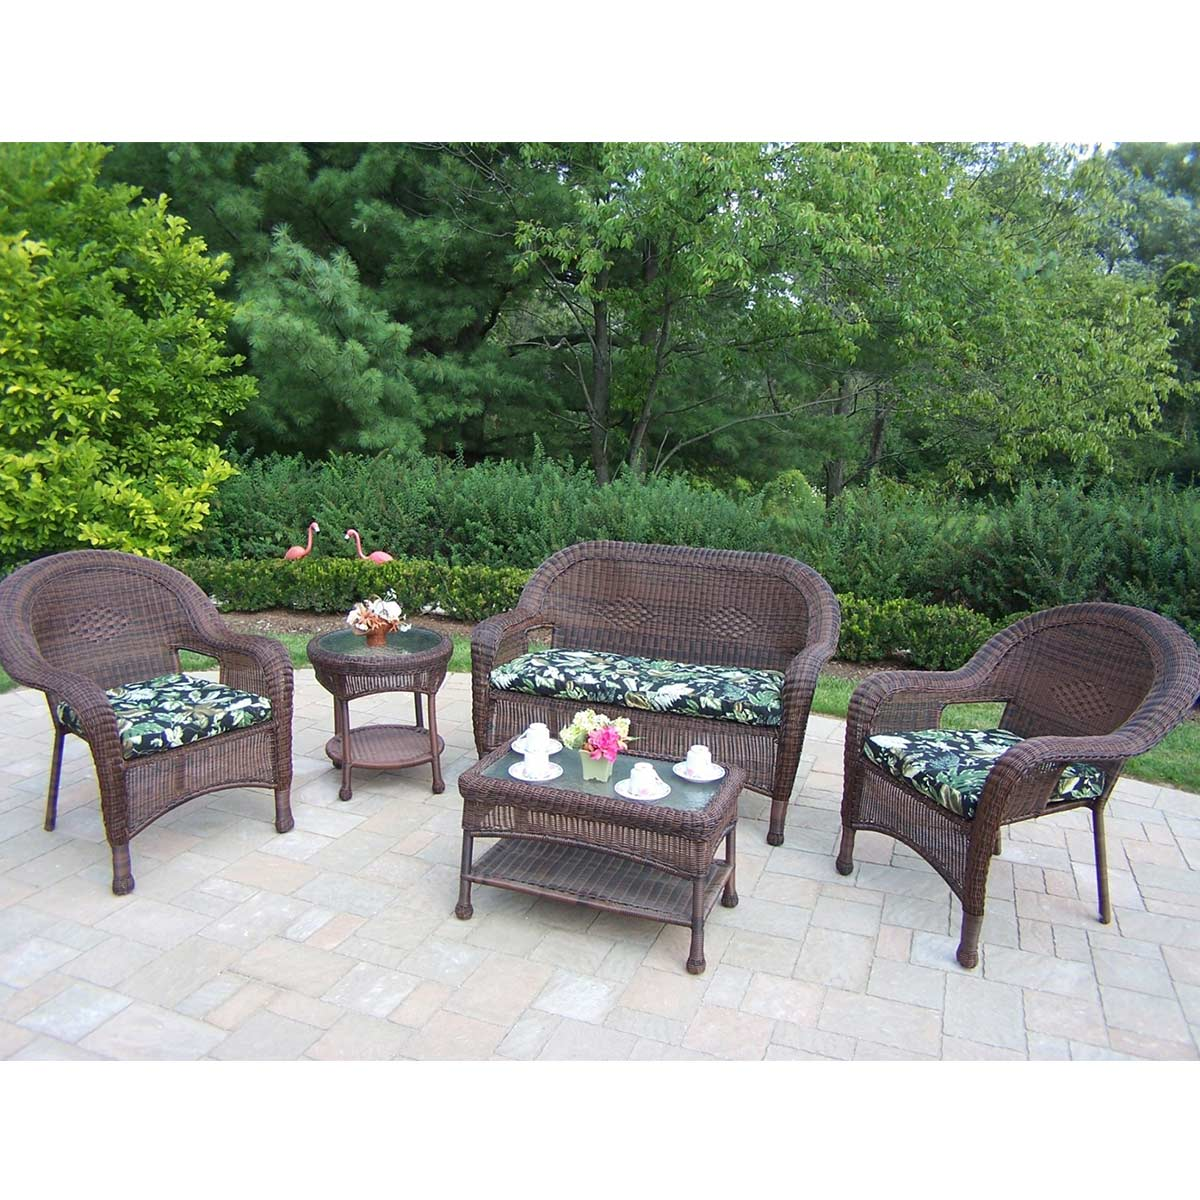 Oakland Living Resin Wicker 5 Piece Outdoor Seating Set ... on Outdoor Living Wicker  id=16785